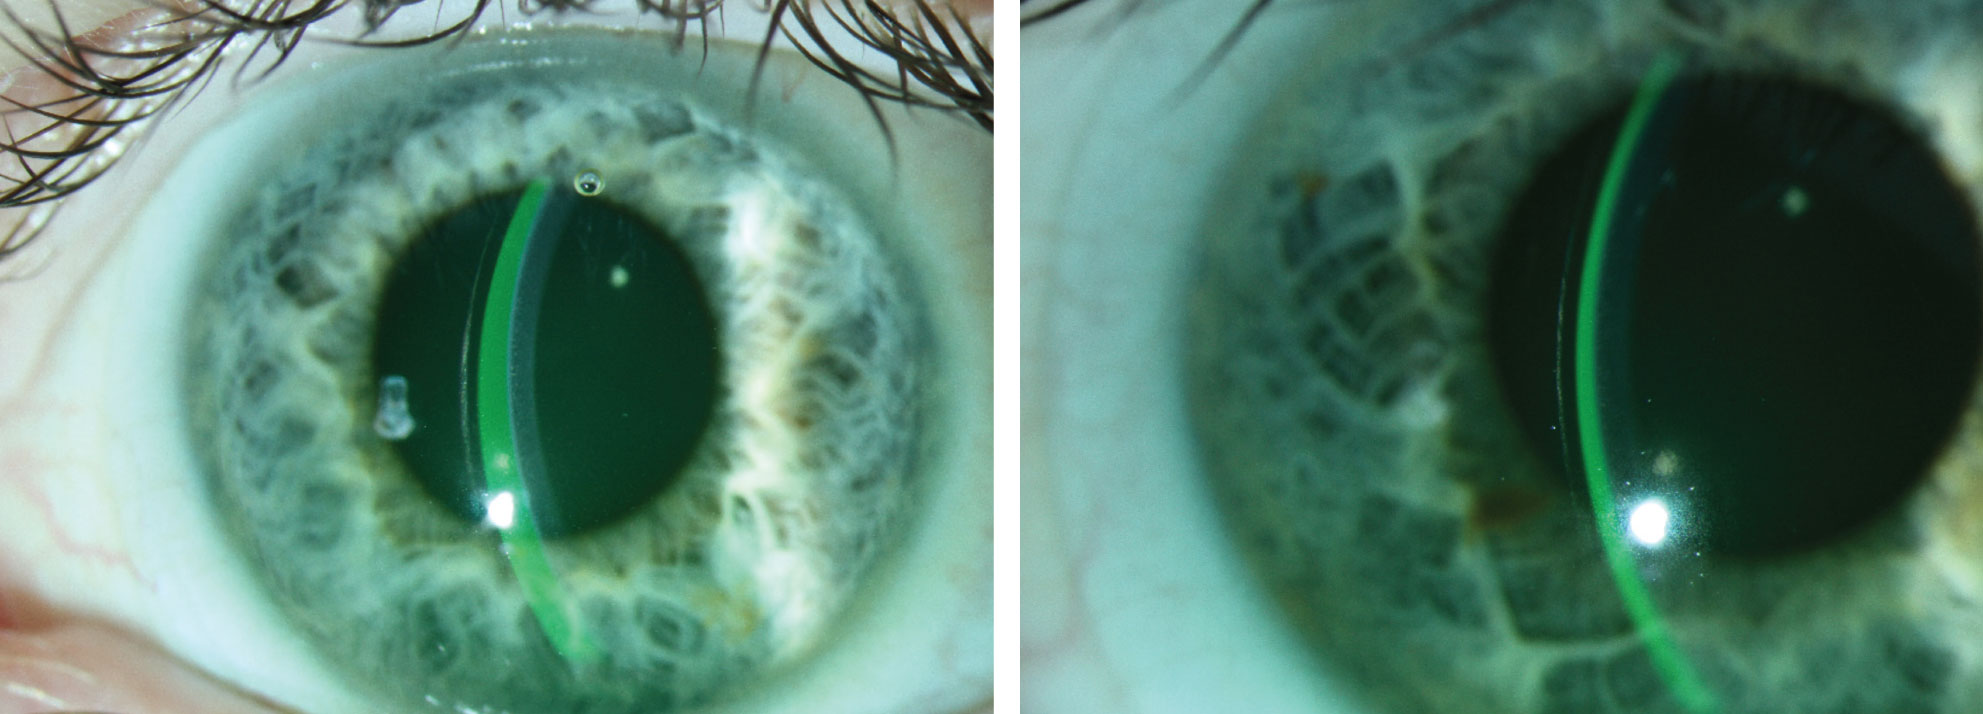 At right, the tear film and lens thickness are almost equal. The lens on the left shows excessive clearance, which could lead to decreased vision, post-lens debris and conjunctival impingement.